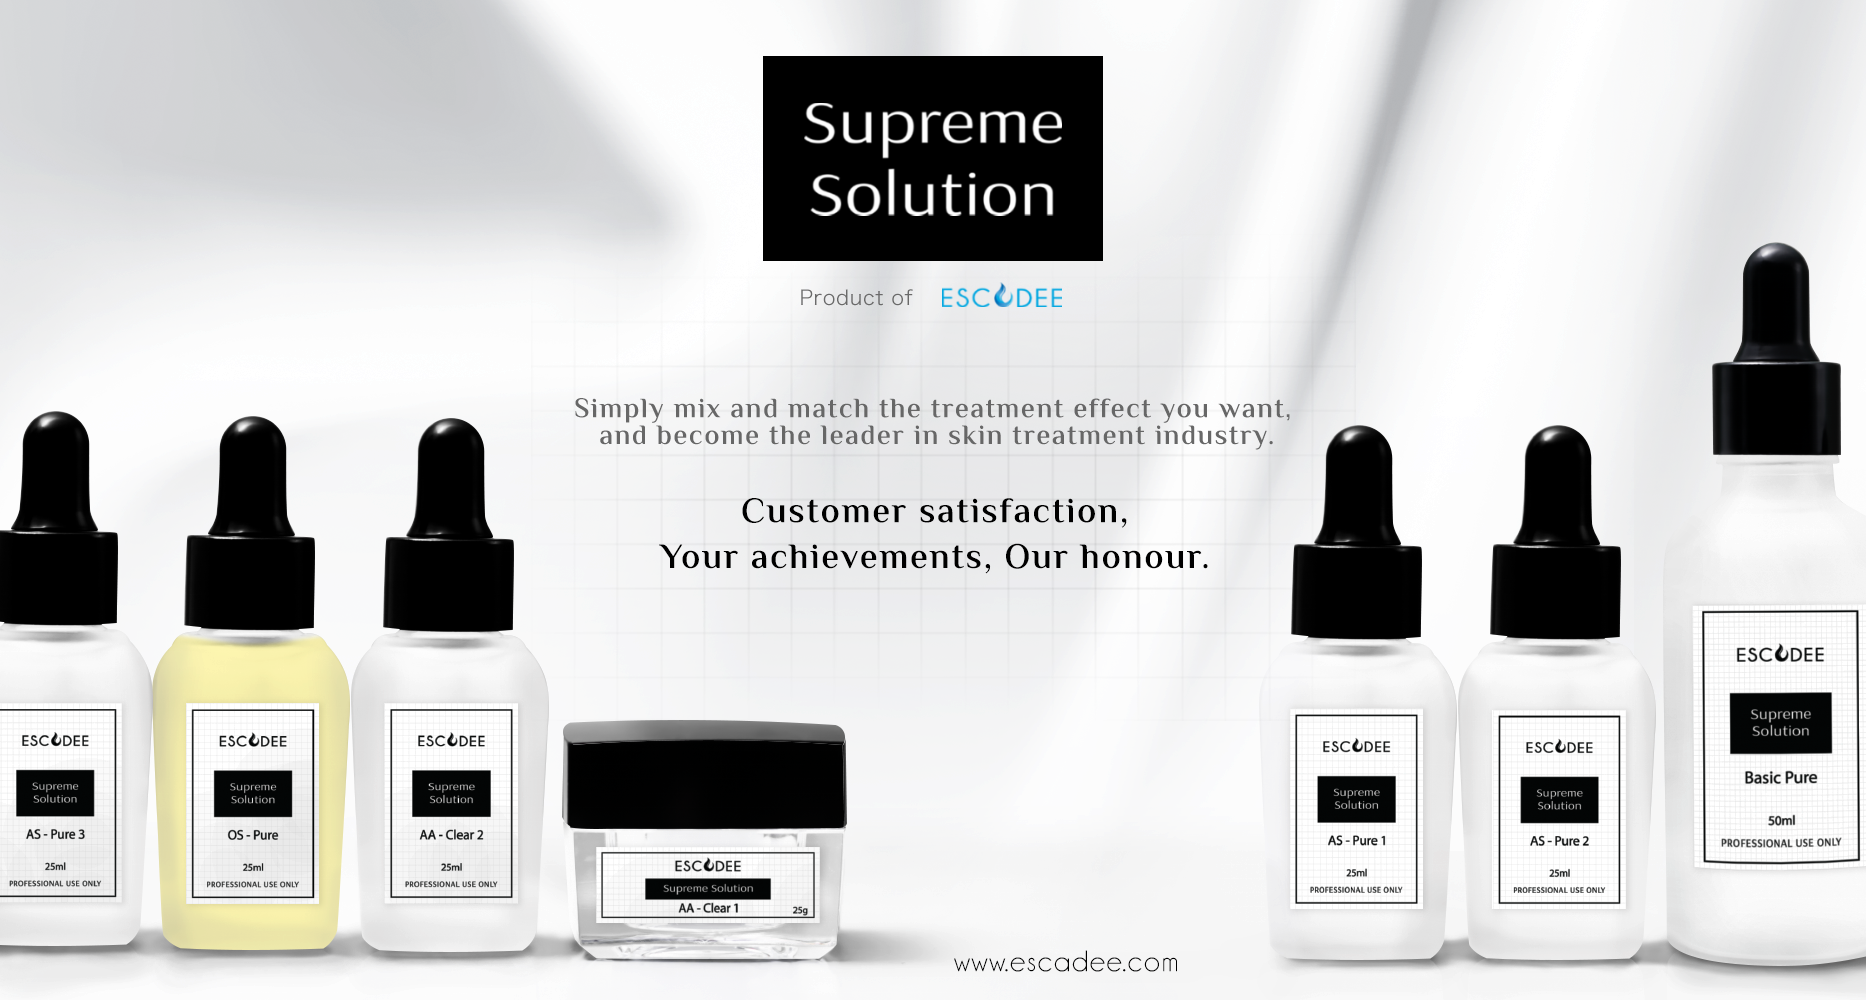 You are currently viewing Escadee Supreme Solution | Create your MiniLab